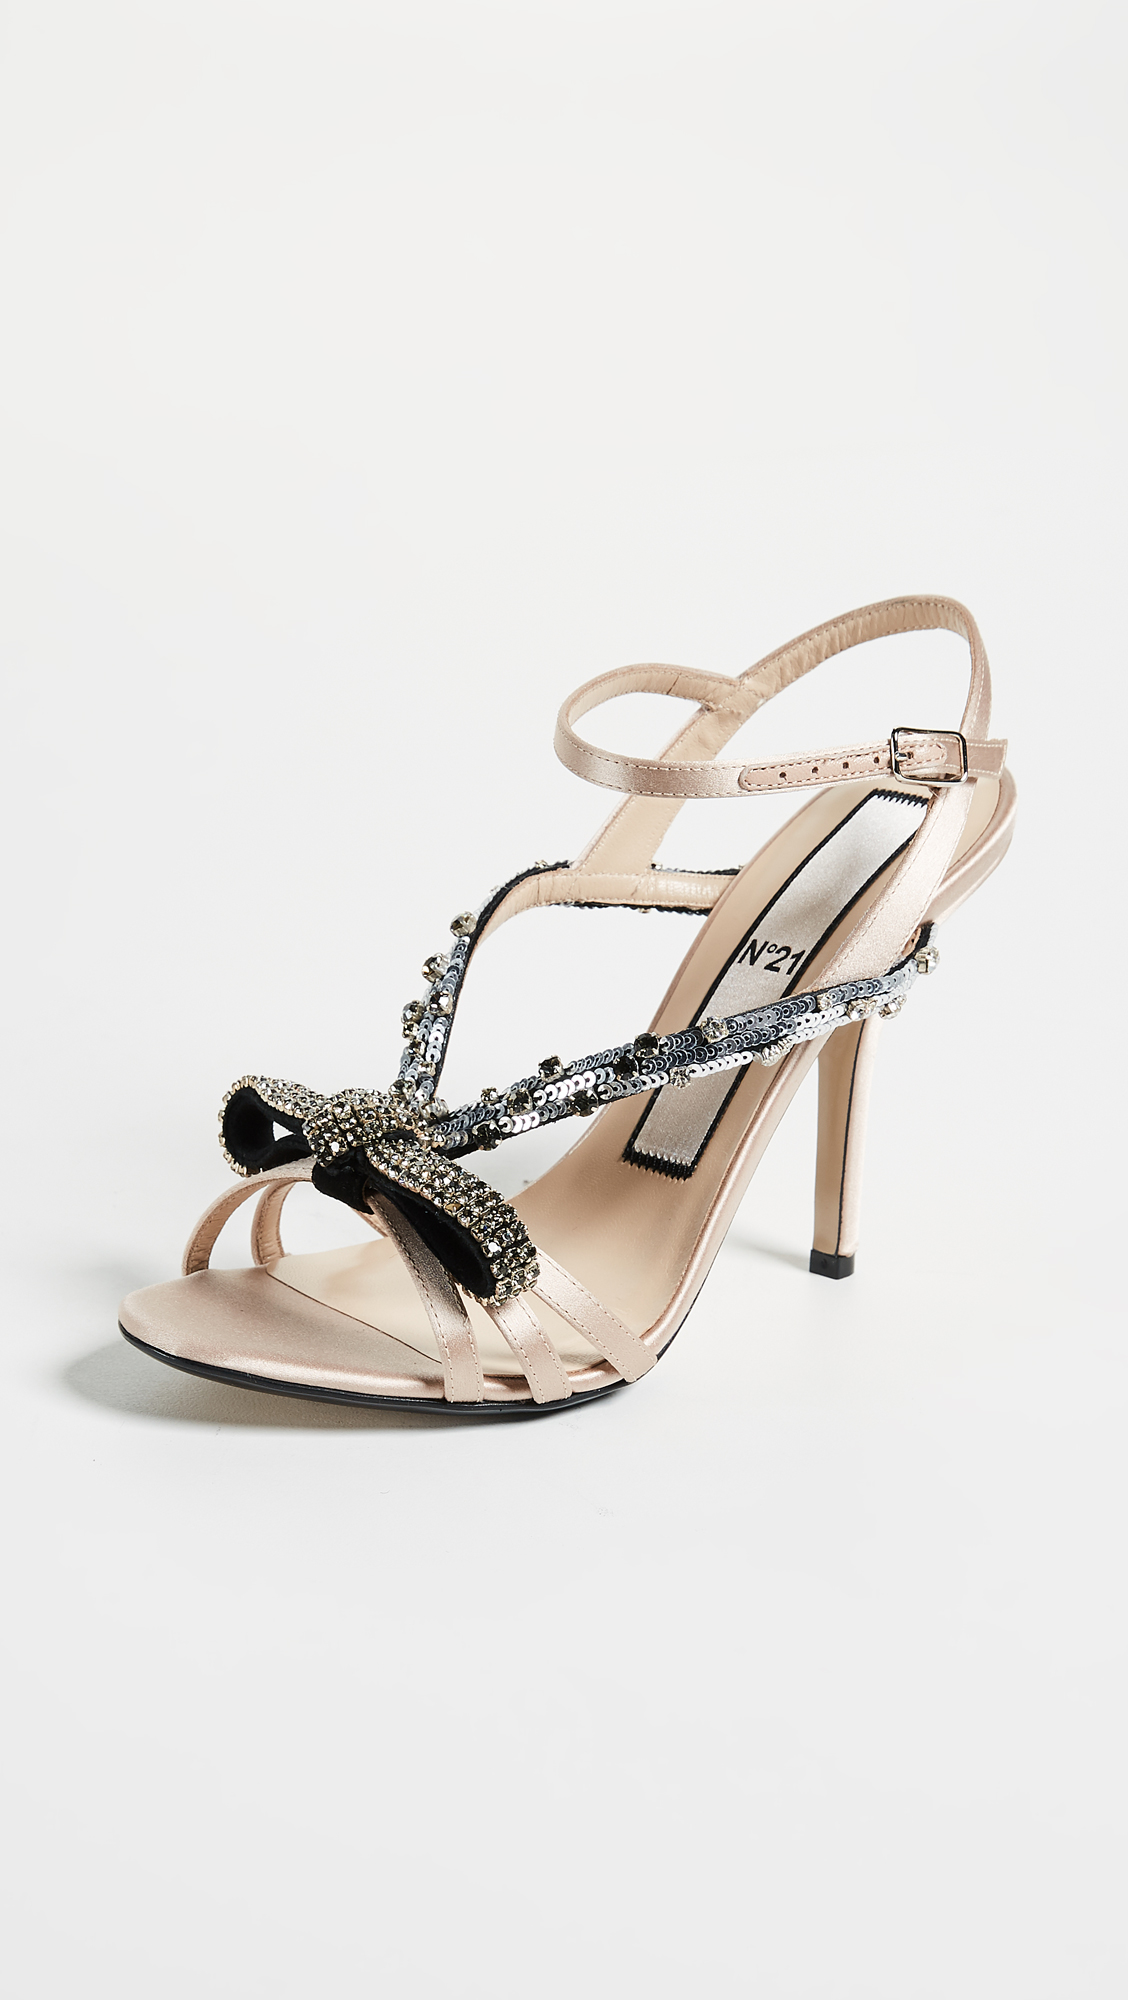 a0480ce67a0 No. 21 Bow Embroidery Sandals   SHOPBOP